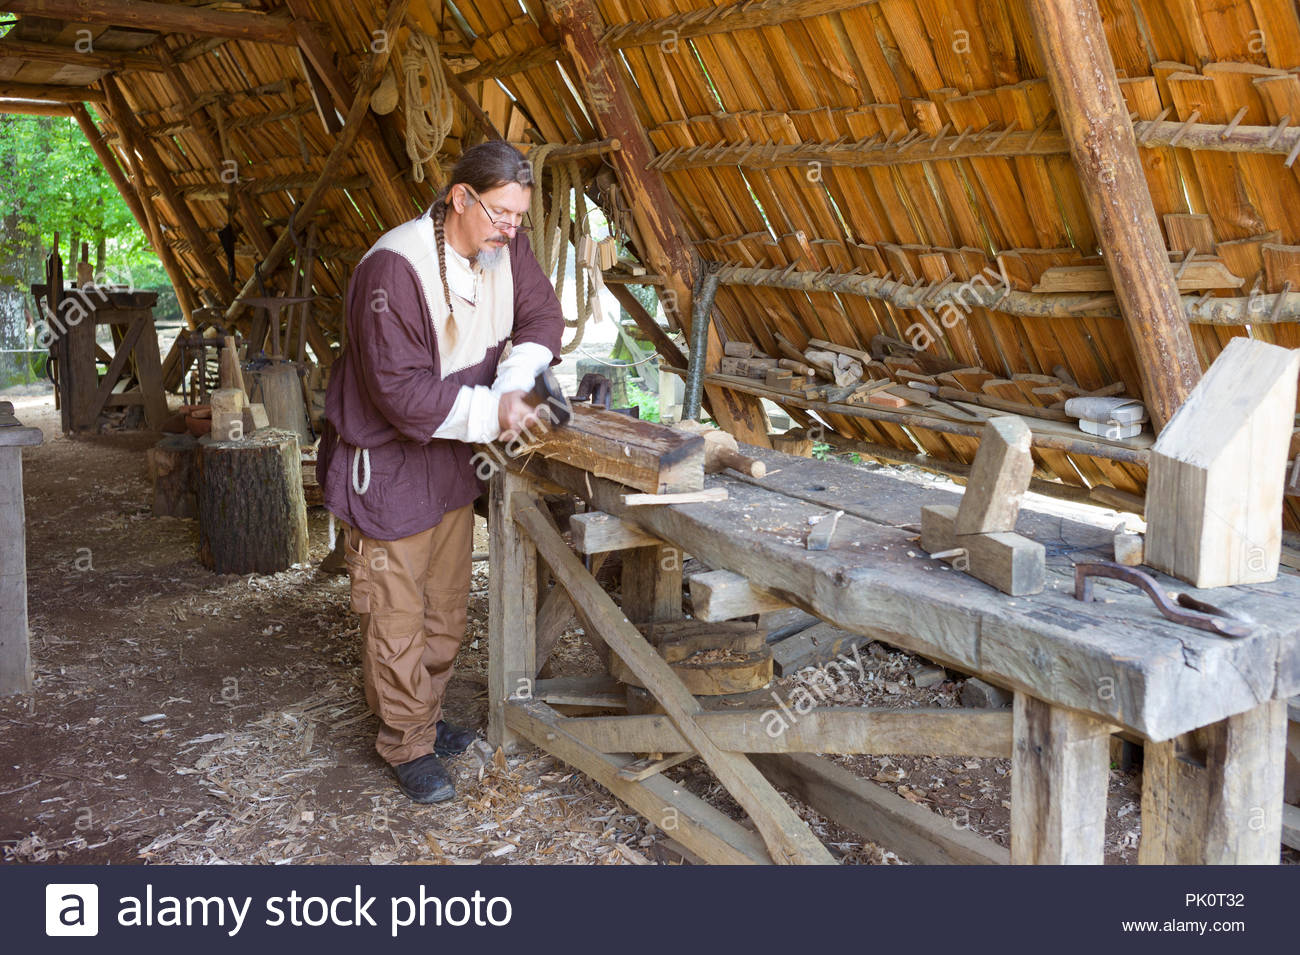 A Carpenter working at Gudelon Castle, Burgundy, France. The castle is being built entirely using medieval tools and building methods. Stock Photo